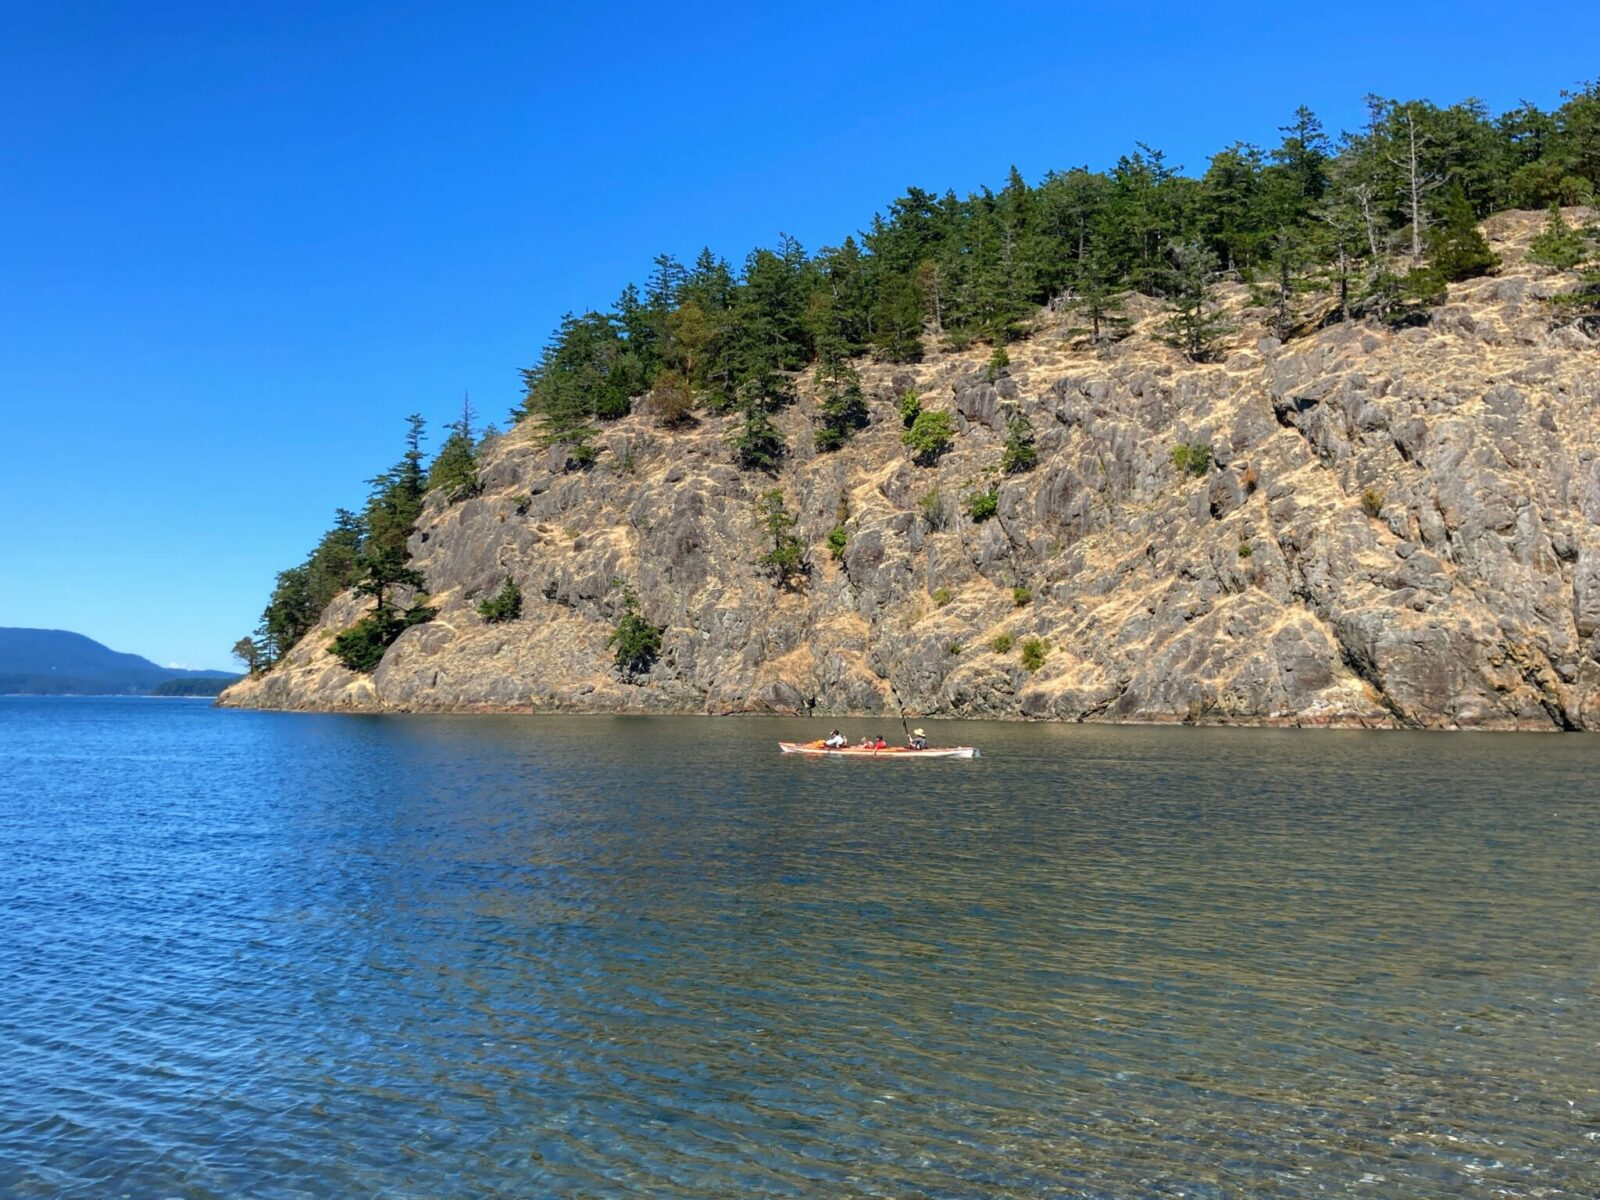 Kayaking is a wonderful thing to do on Lopez Island. A trip kayak is in calm water between the beach and a nearby rocky and tree covered island